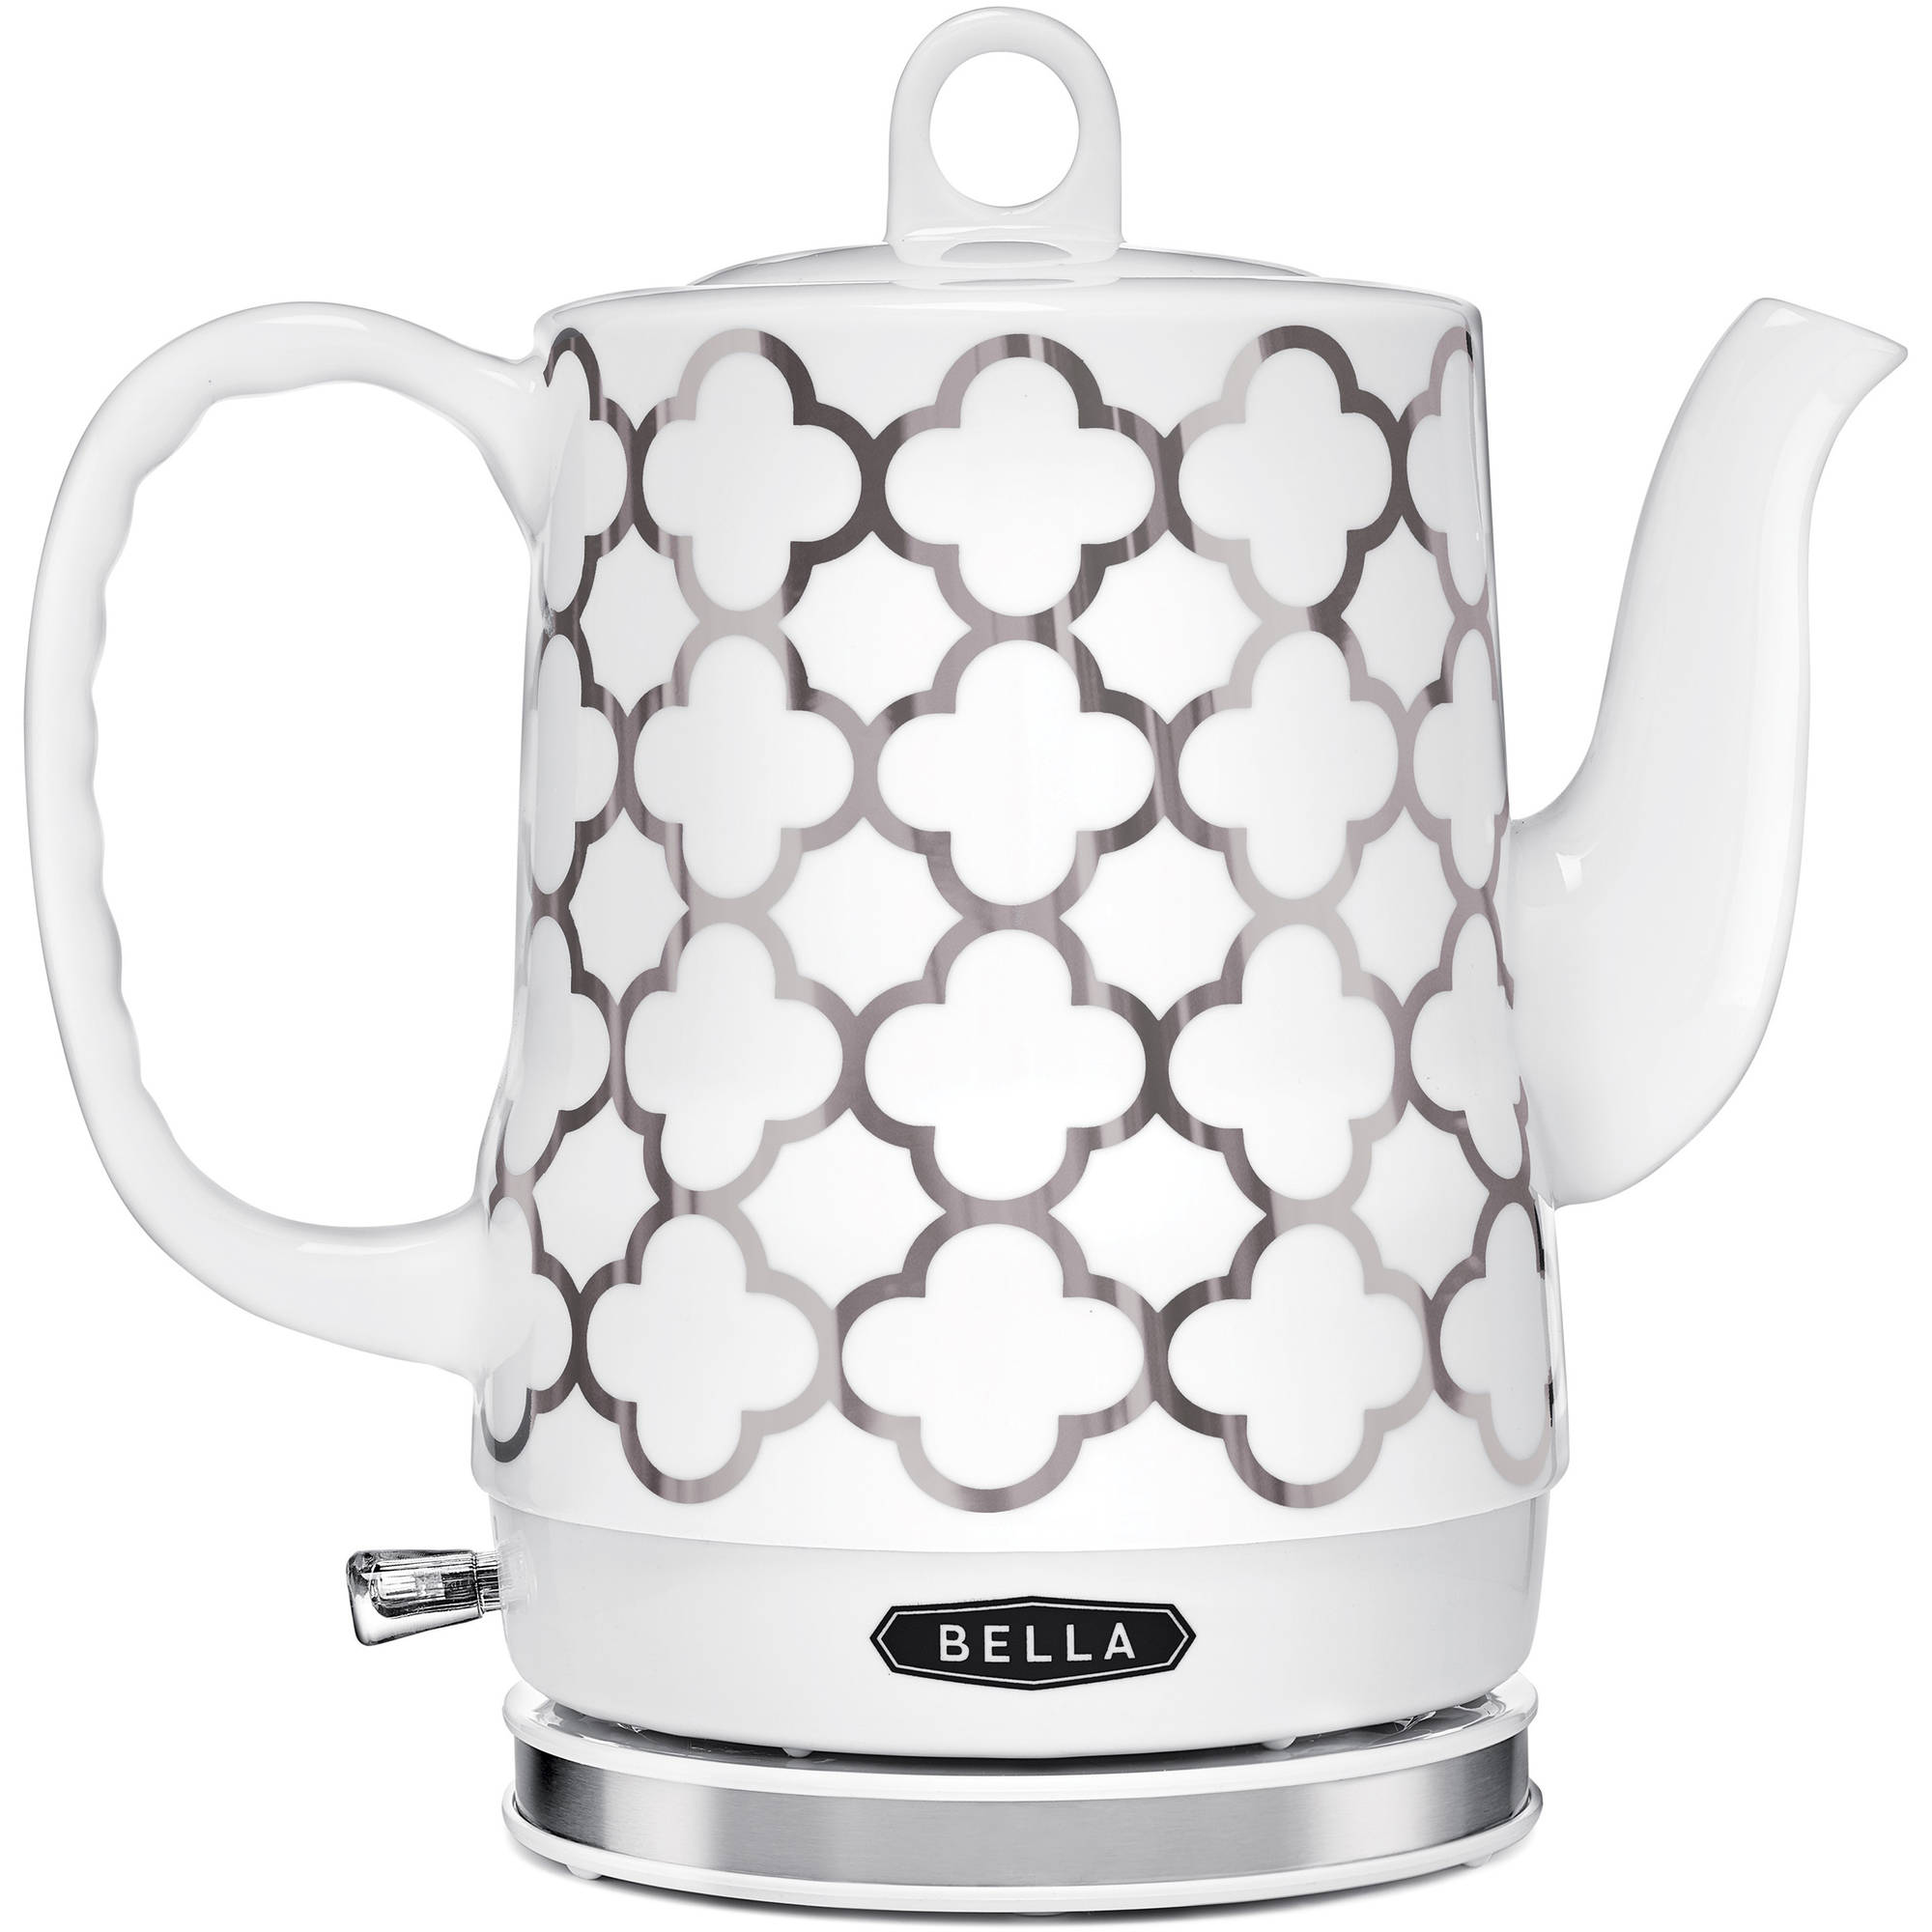 Bella 1.2 L Silver Ceramic Kettle by Sensio